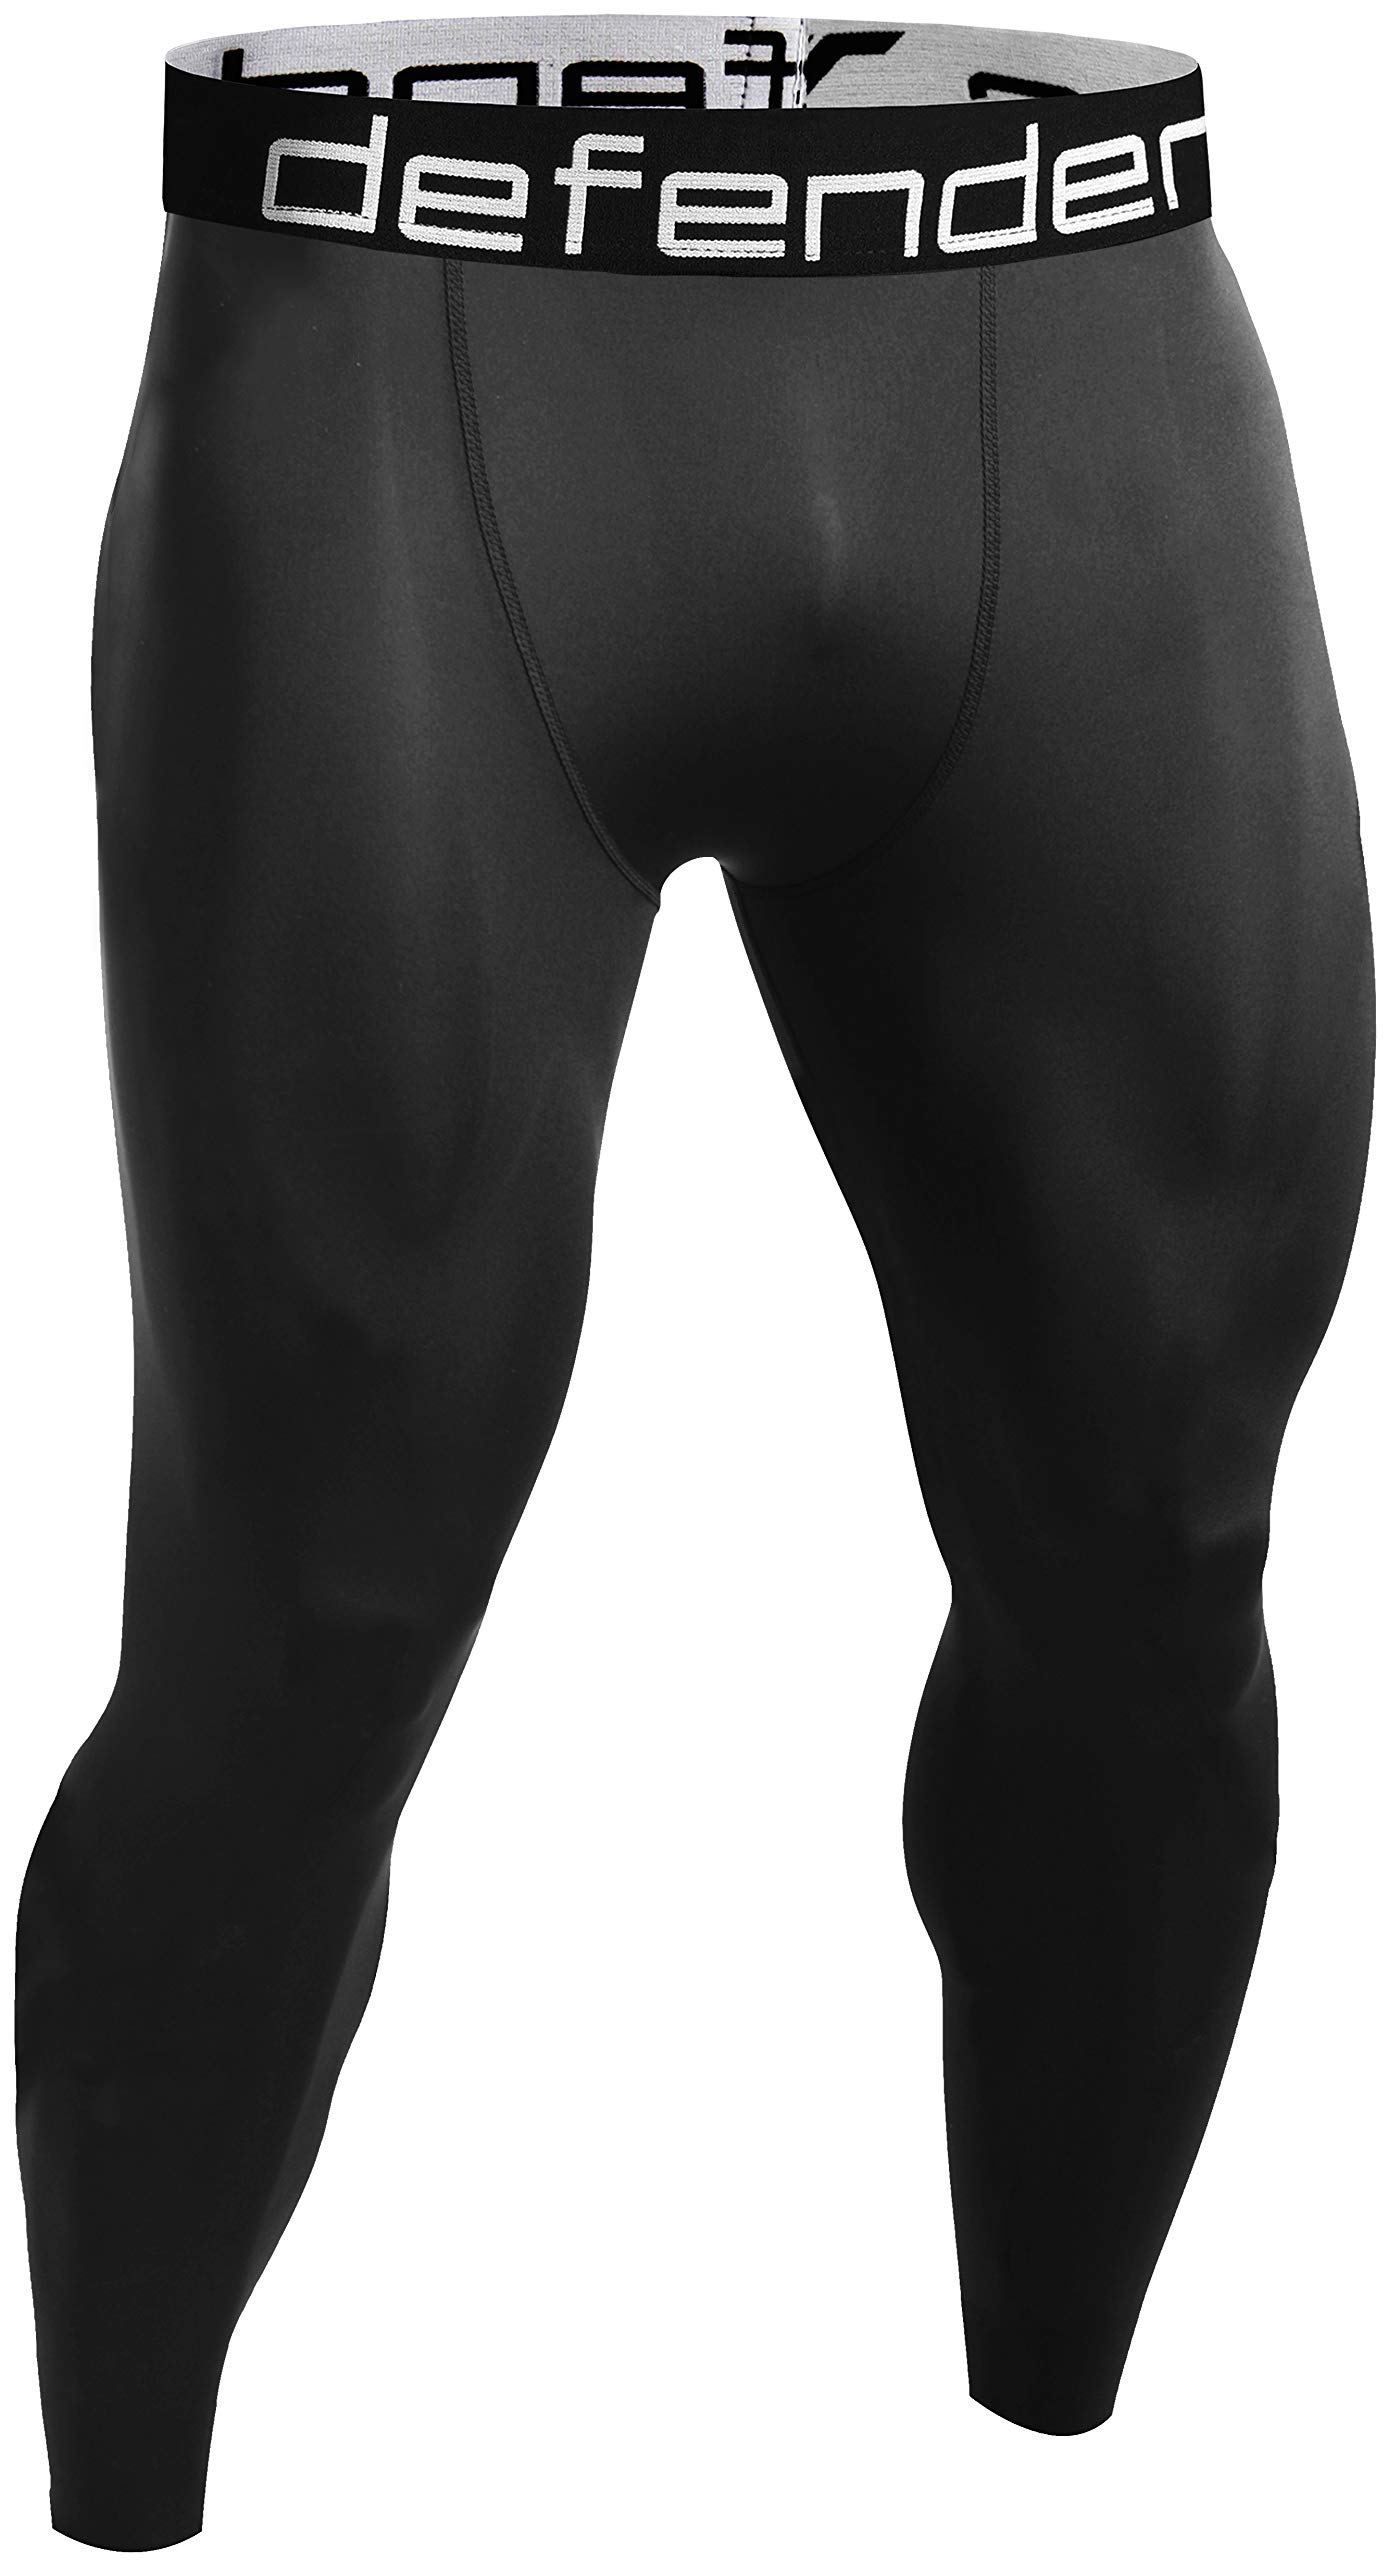 Defender Men's Sports Compression Pants Under Jerseys Tights Shorts Fits Hockey BB_XL by Defender